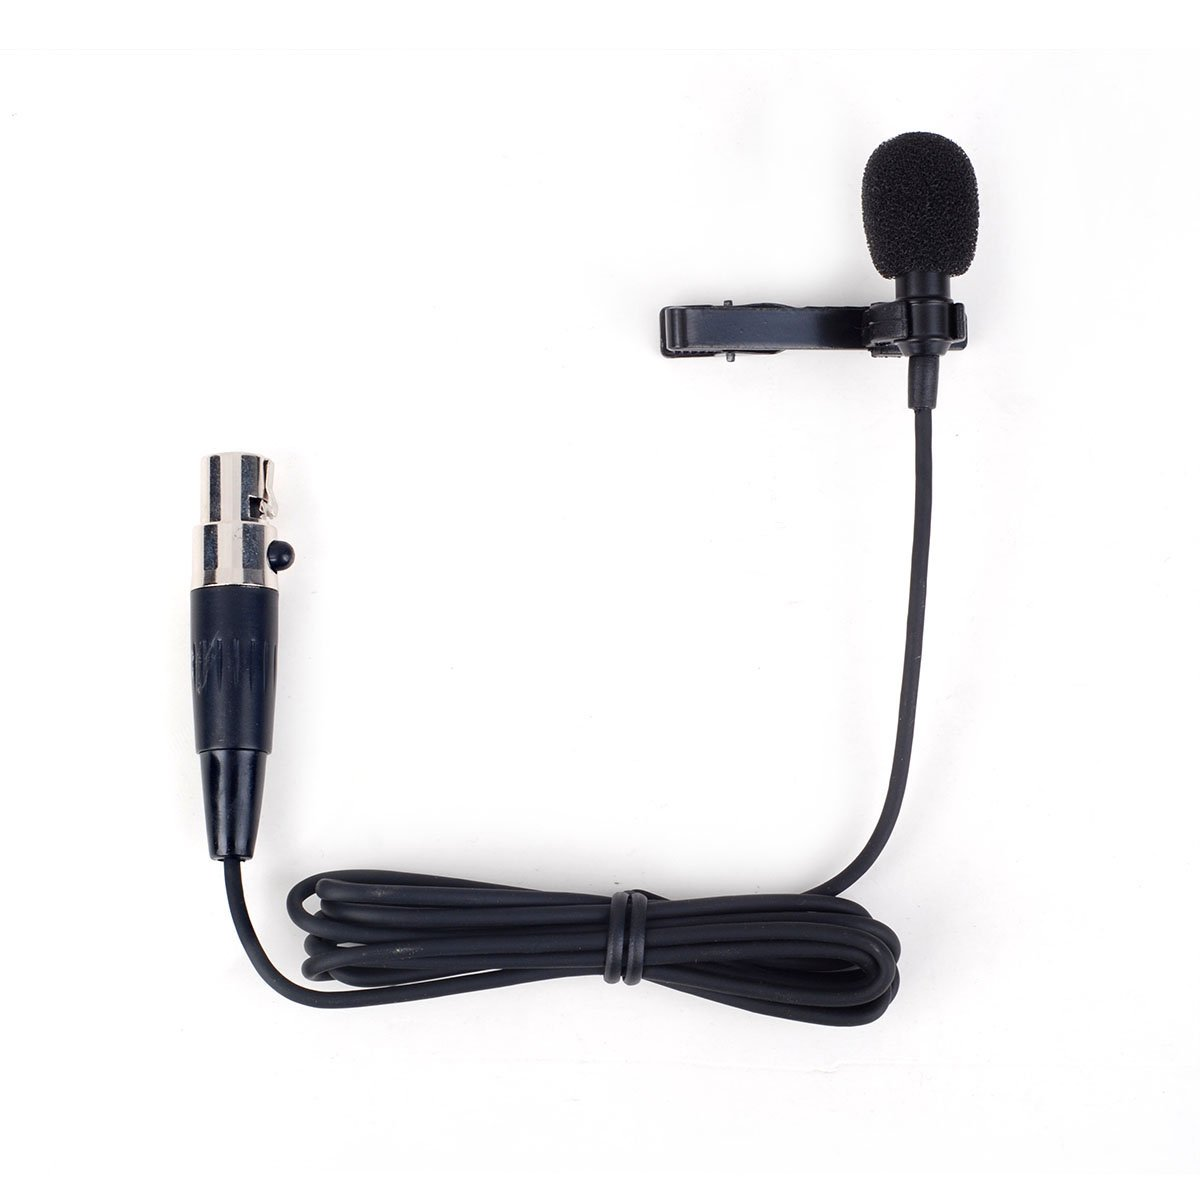 Atny Sh 410 Lavalier Lapel Microphone Omnidirectional Electret Condenser Wiring Youtube Mic With Clip Perfect For Shure System Recording Interview Podcast Video